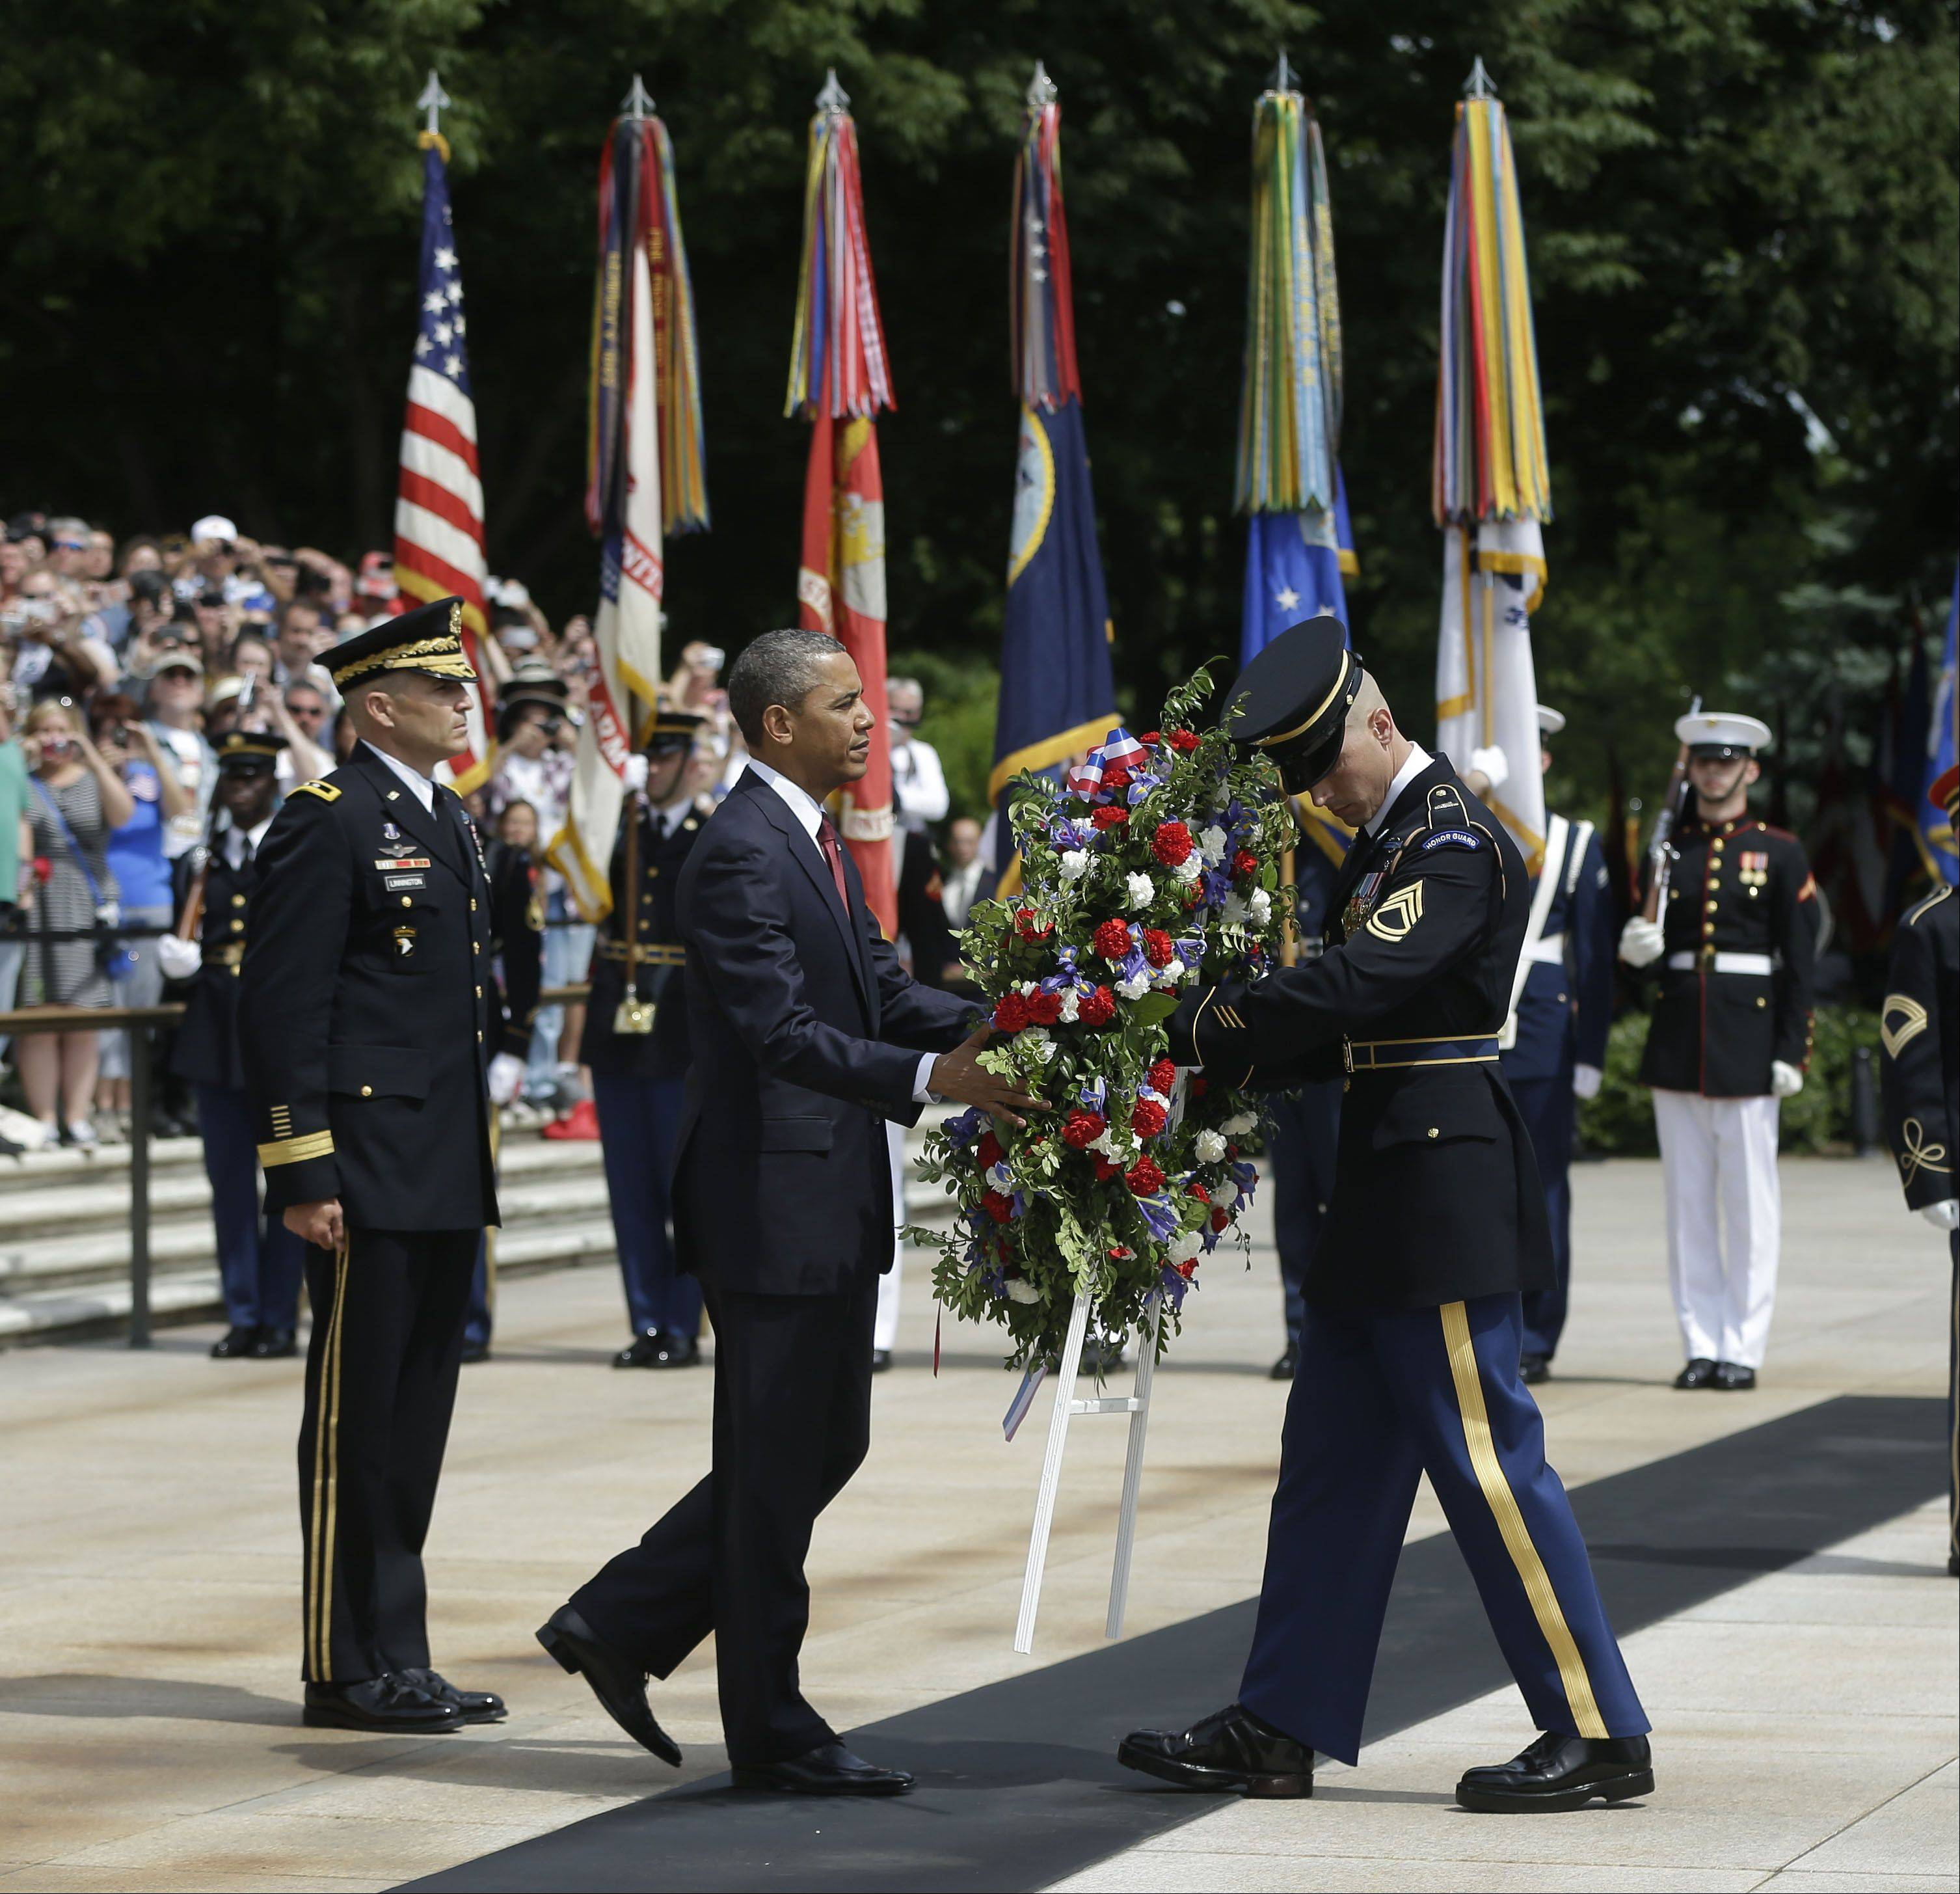 President Barack Obama, center, participates in the wreathlaying ceremony at the Tomb of the Unknowns with Maj. Gen. Michael S. Linnington, left, Commander of the U.S. Army Military District of Washington, at Arlington National Cemetery on Memorial Day, May 27, 2013, in Arlington, Va.